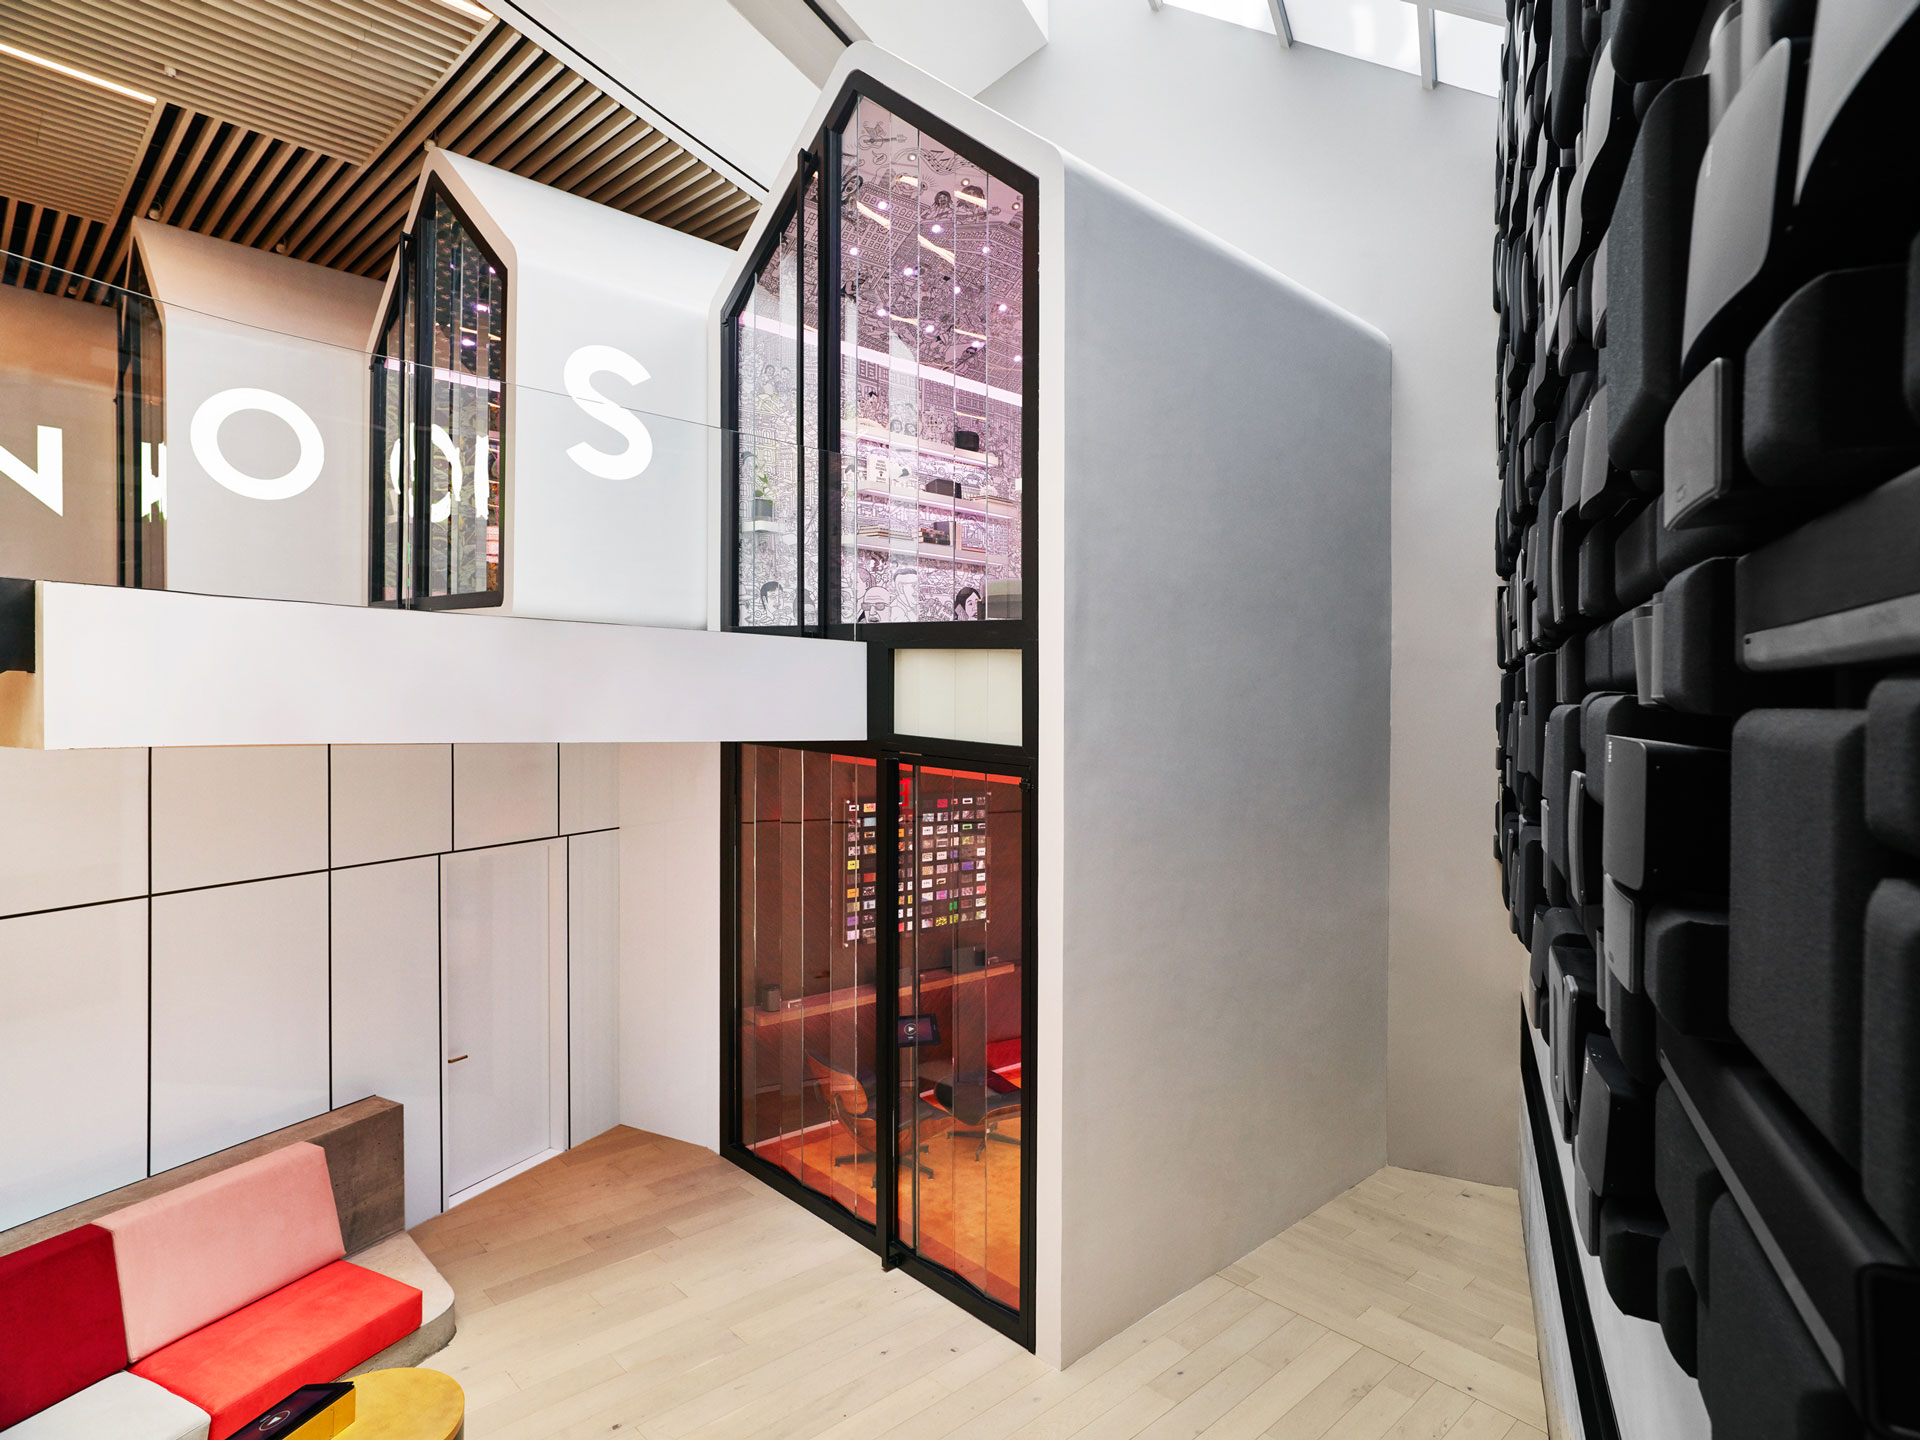 Inside the Sonos store, designed by Partners & Spade; partnersandspade.com